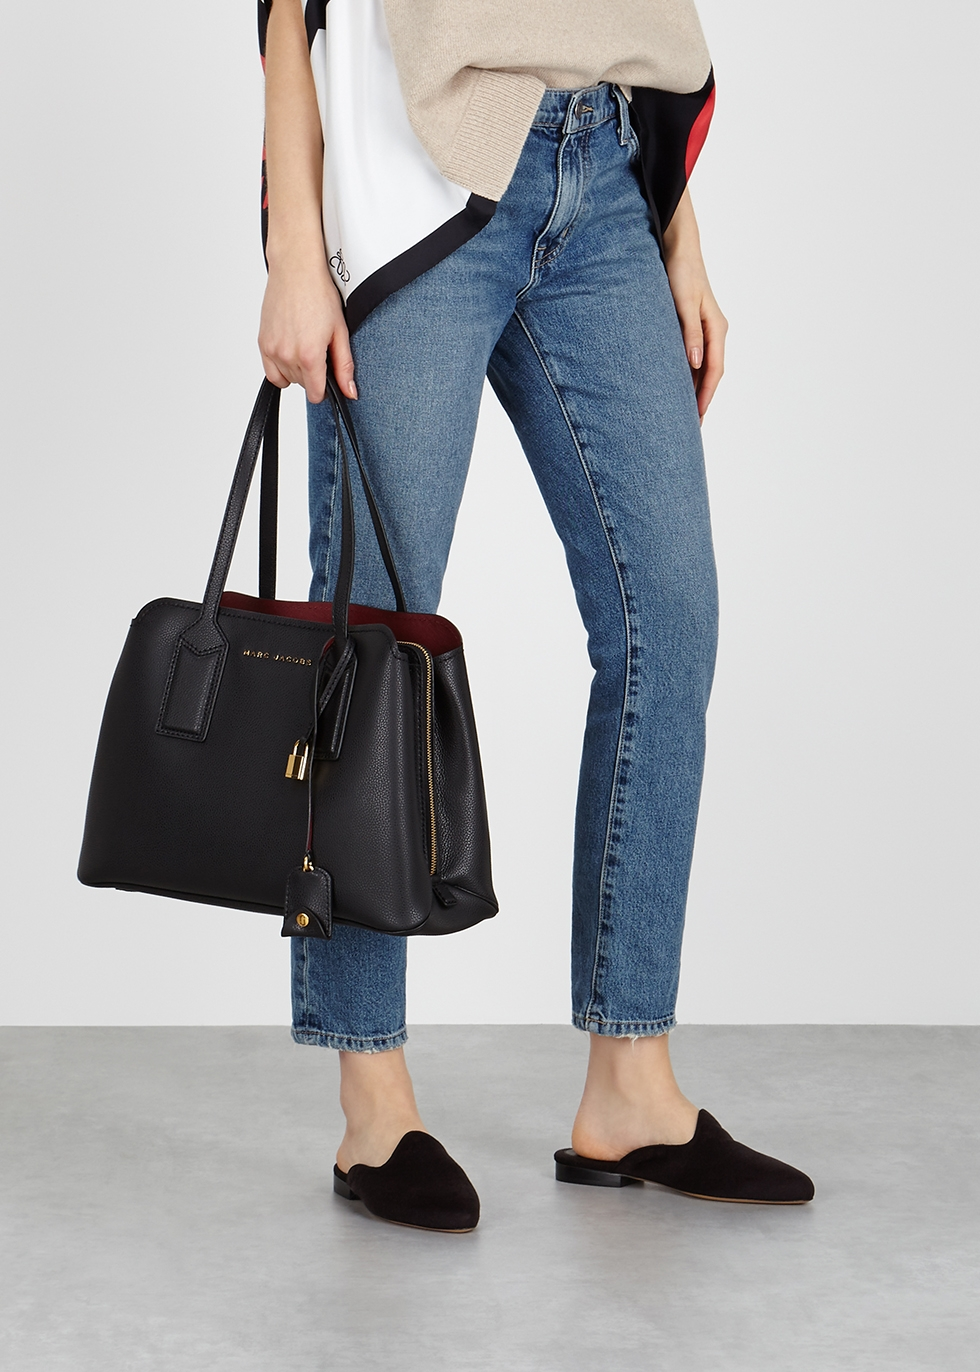 3c990a5dd098 Marc Jacobs The Editor black pebbled leather tote - Harvey Nichols